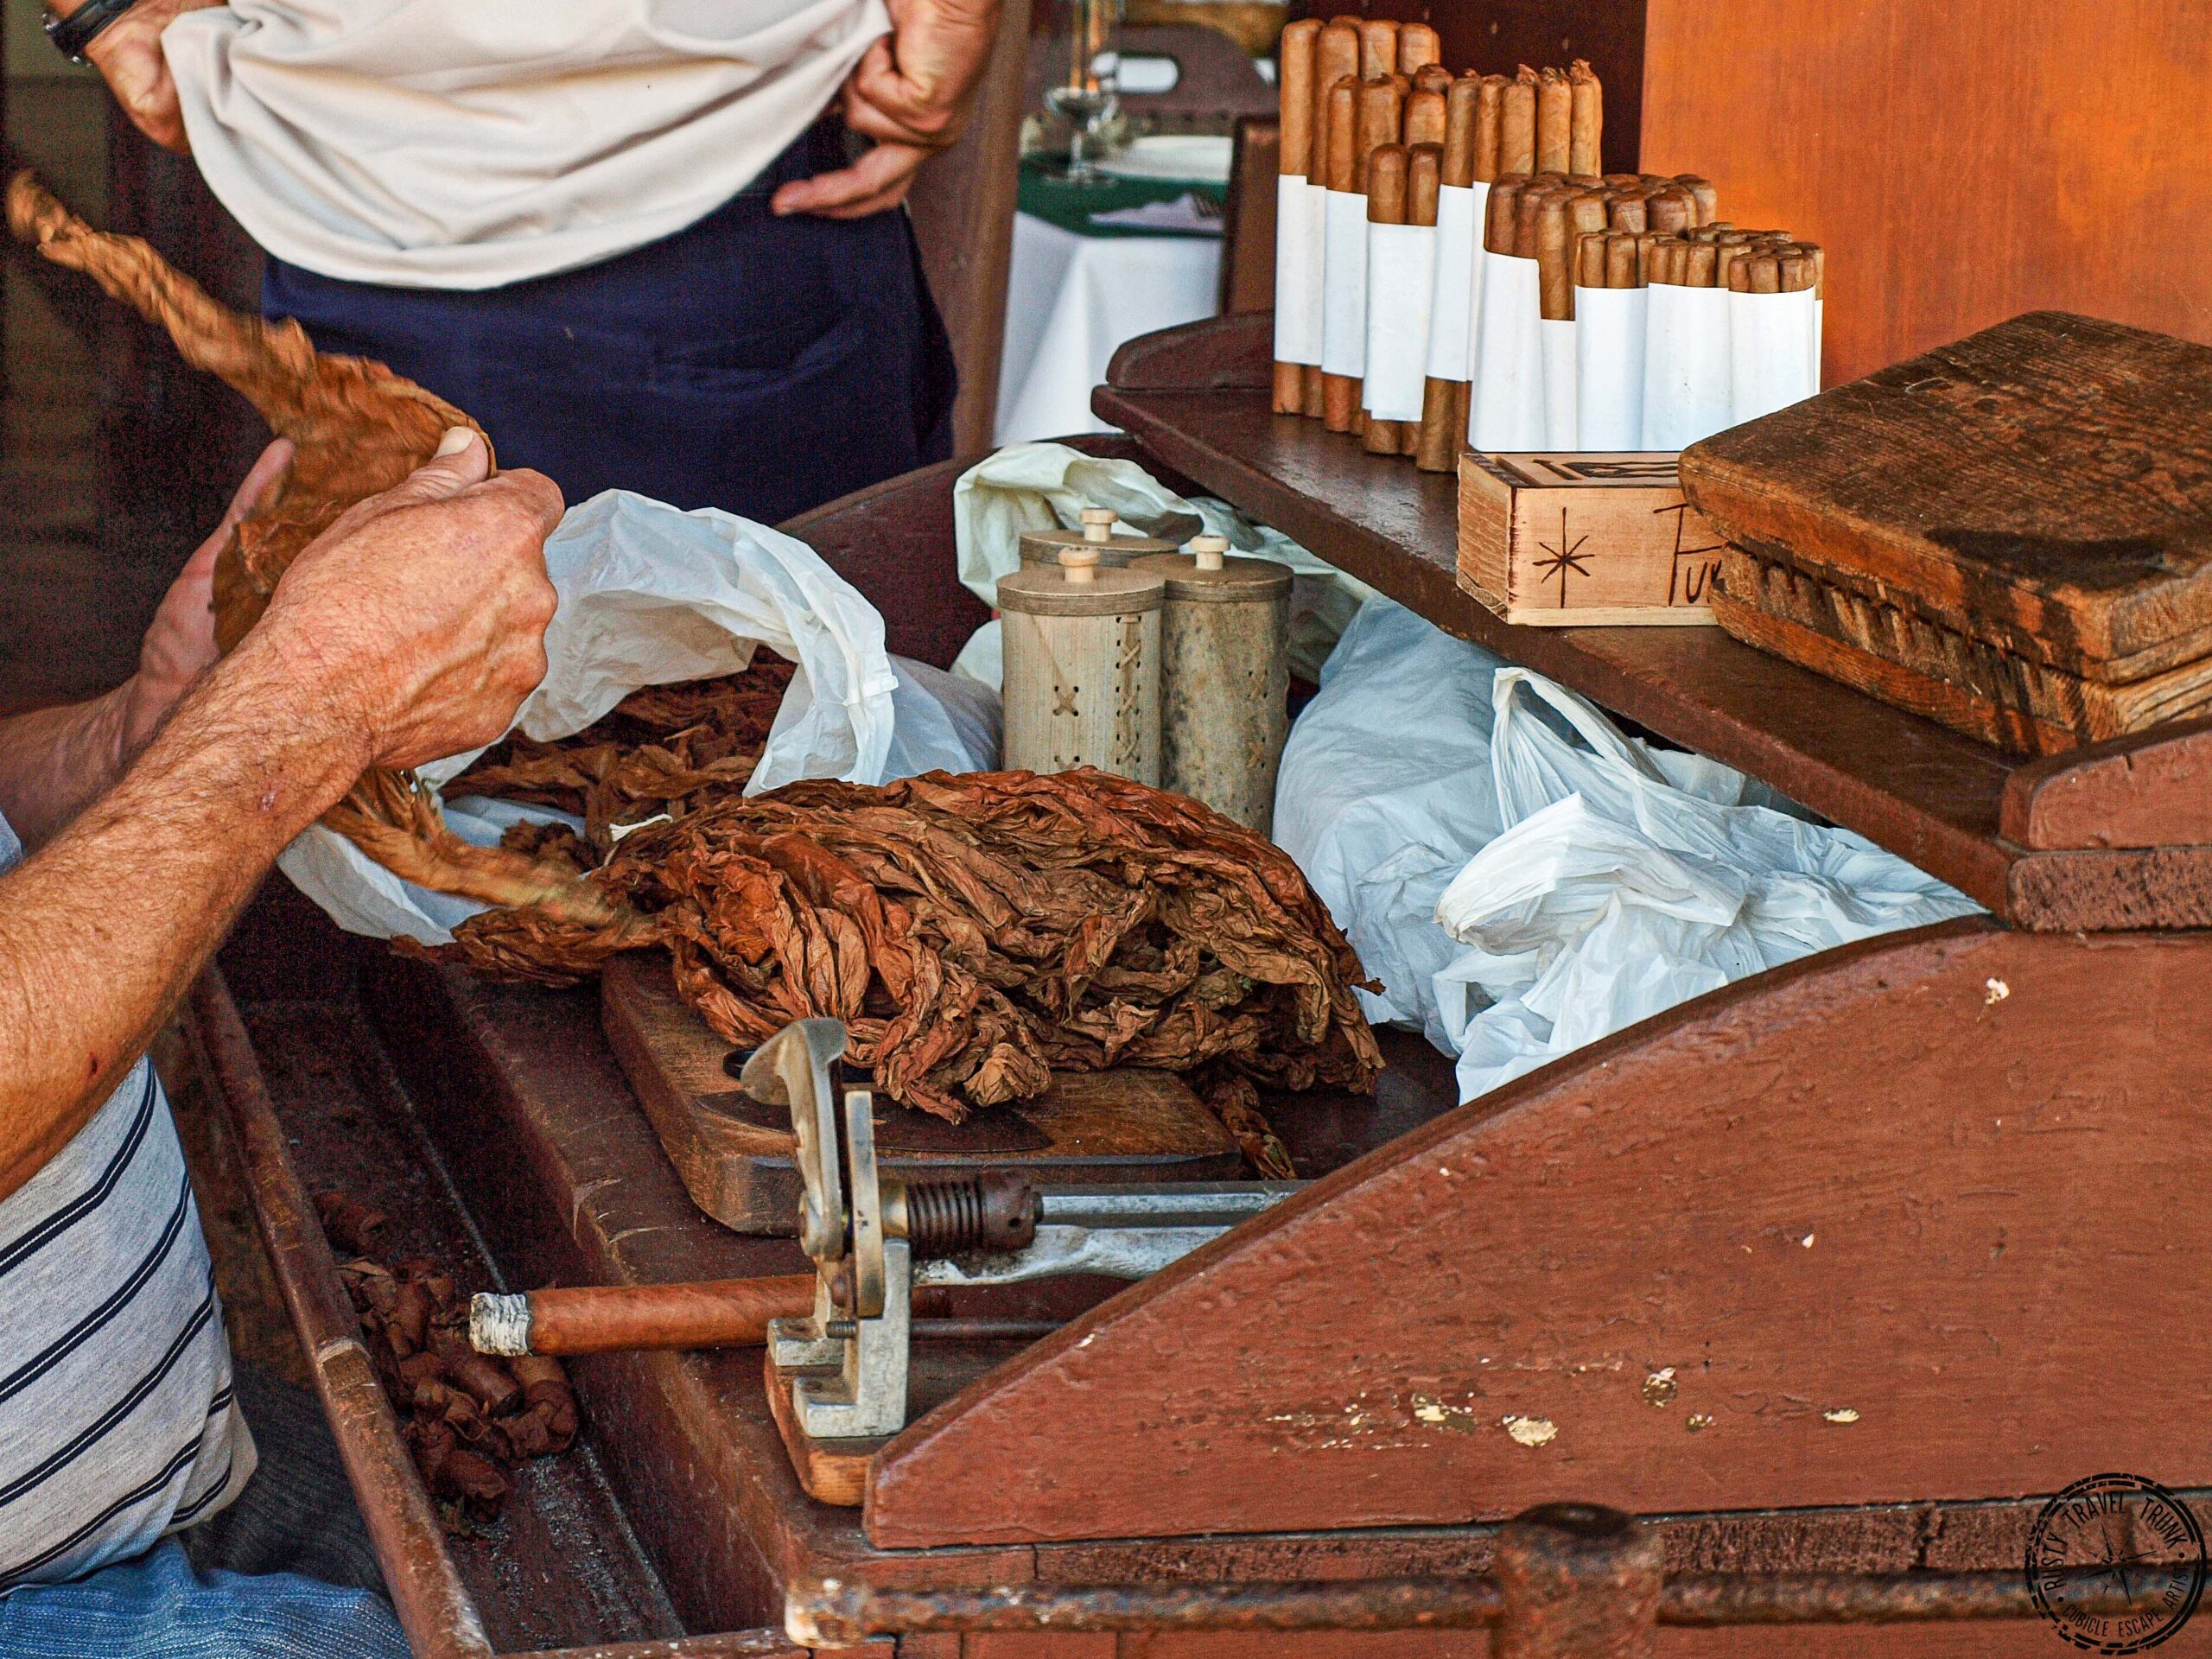 Rolling a new cigar